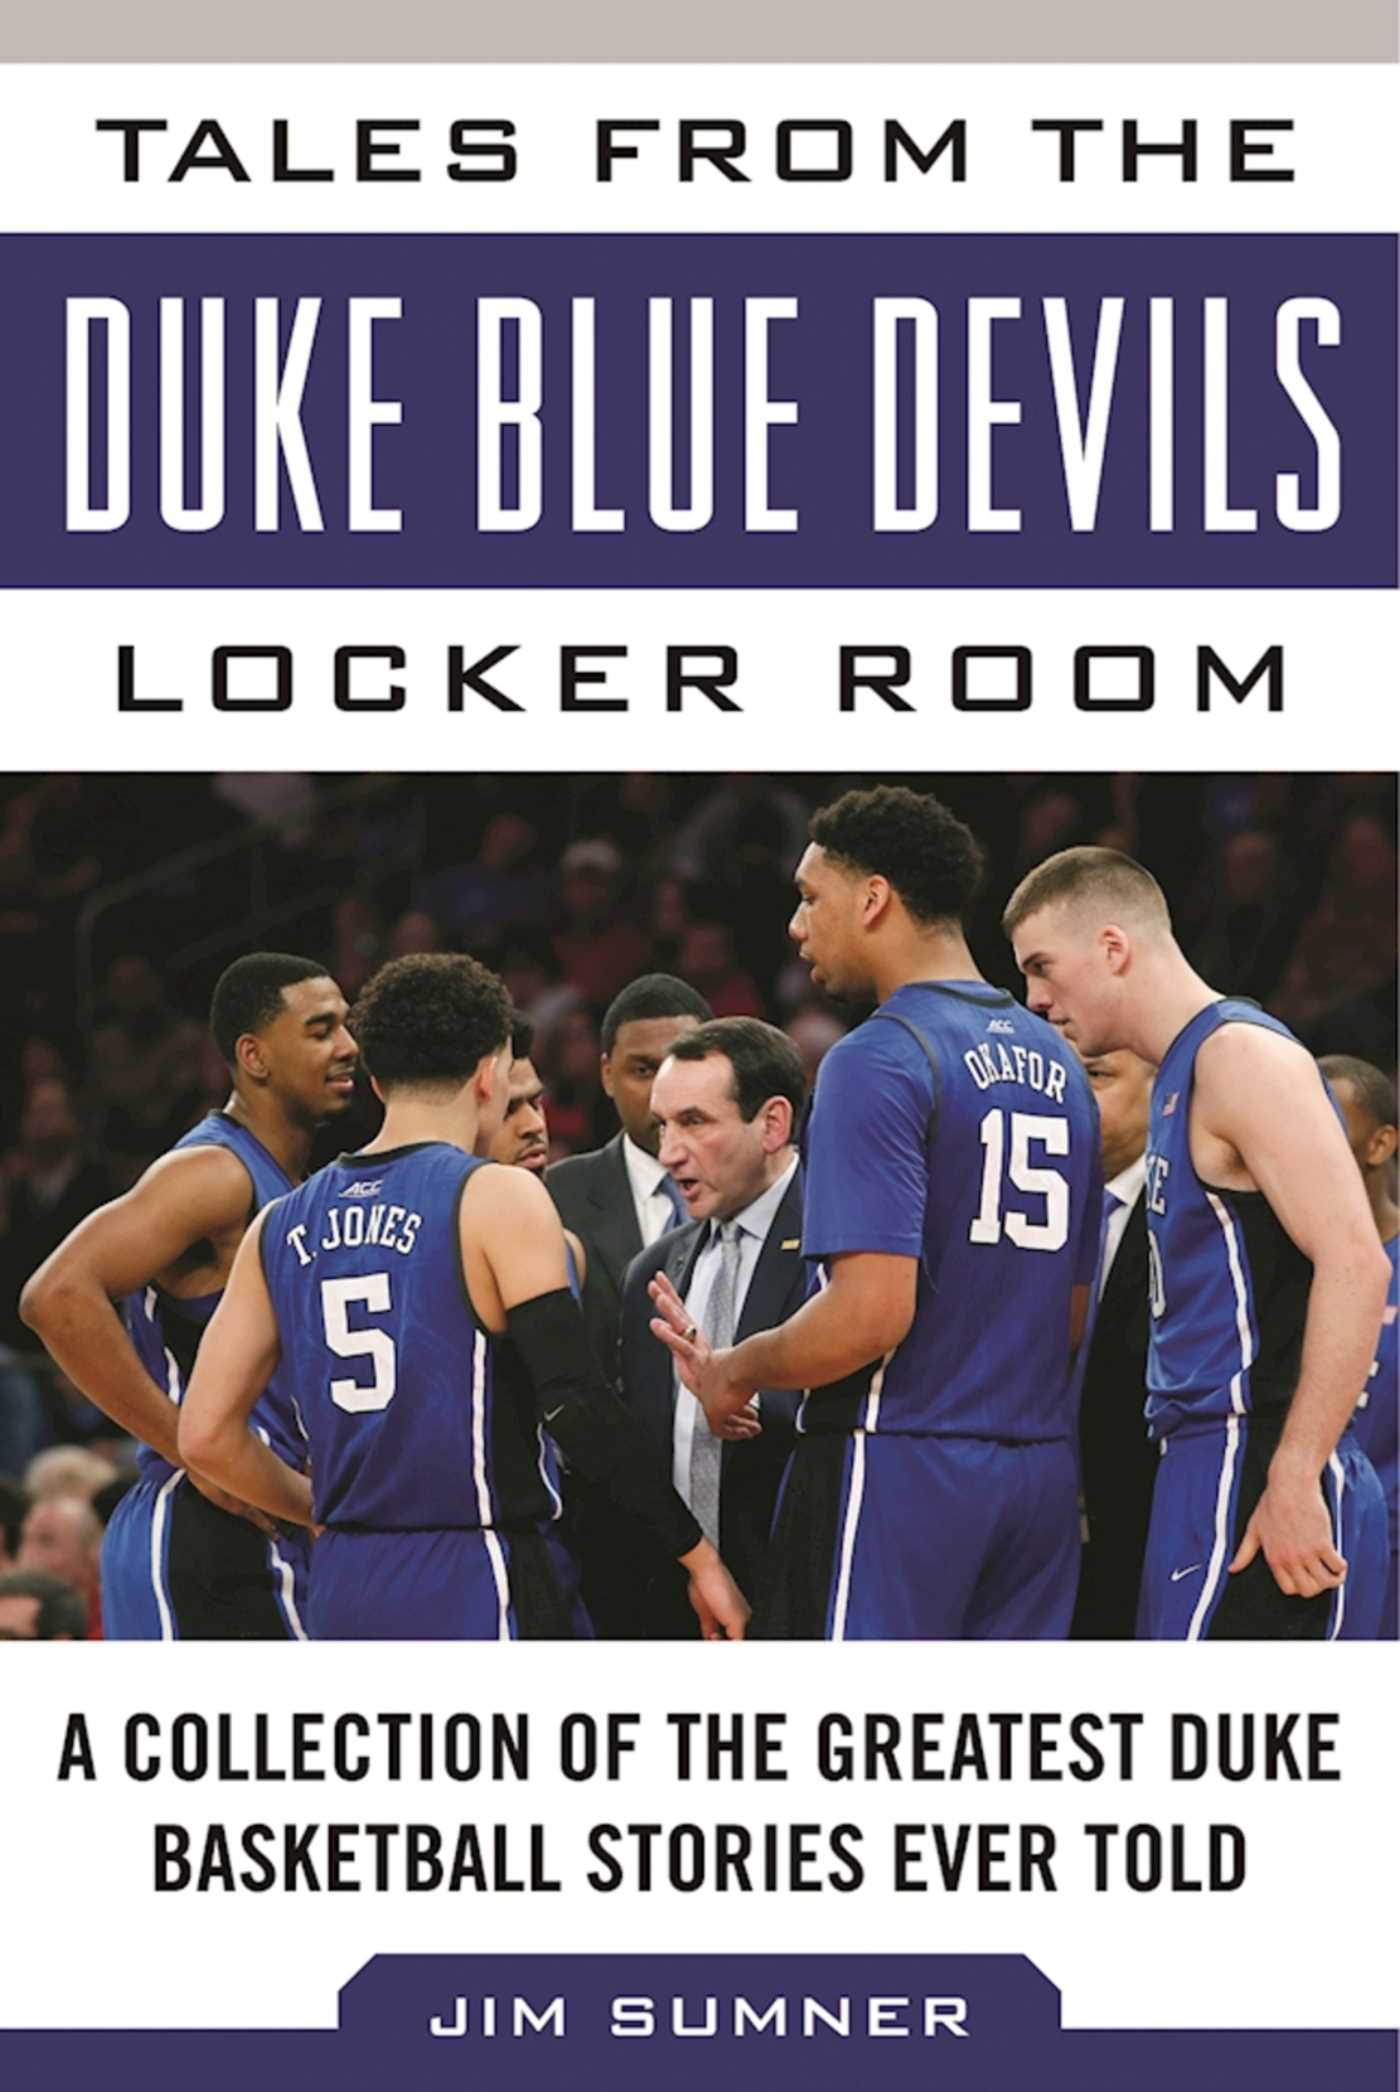 Tales from the Duke Blue Devils Locker Room | Book by Jim Sumner